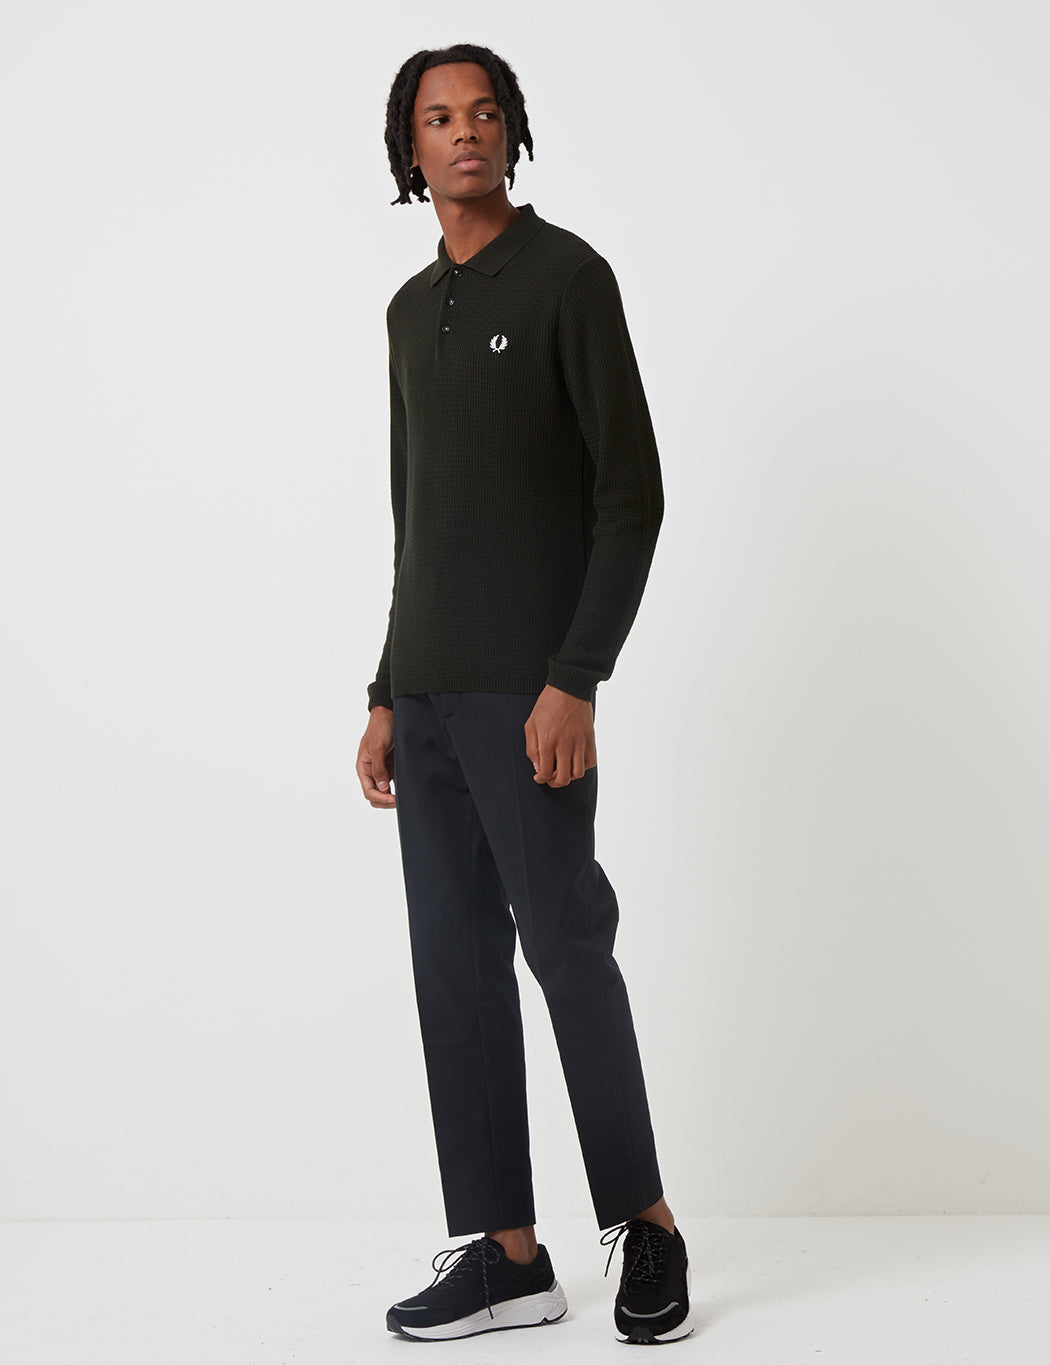 Fred Perry Re-issues L/S Texture Knit Polo Shirt - Hunting Green